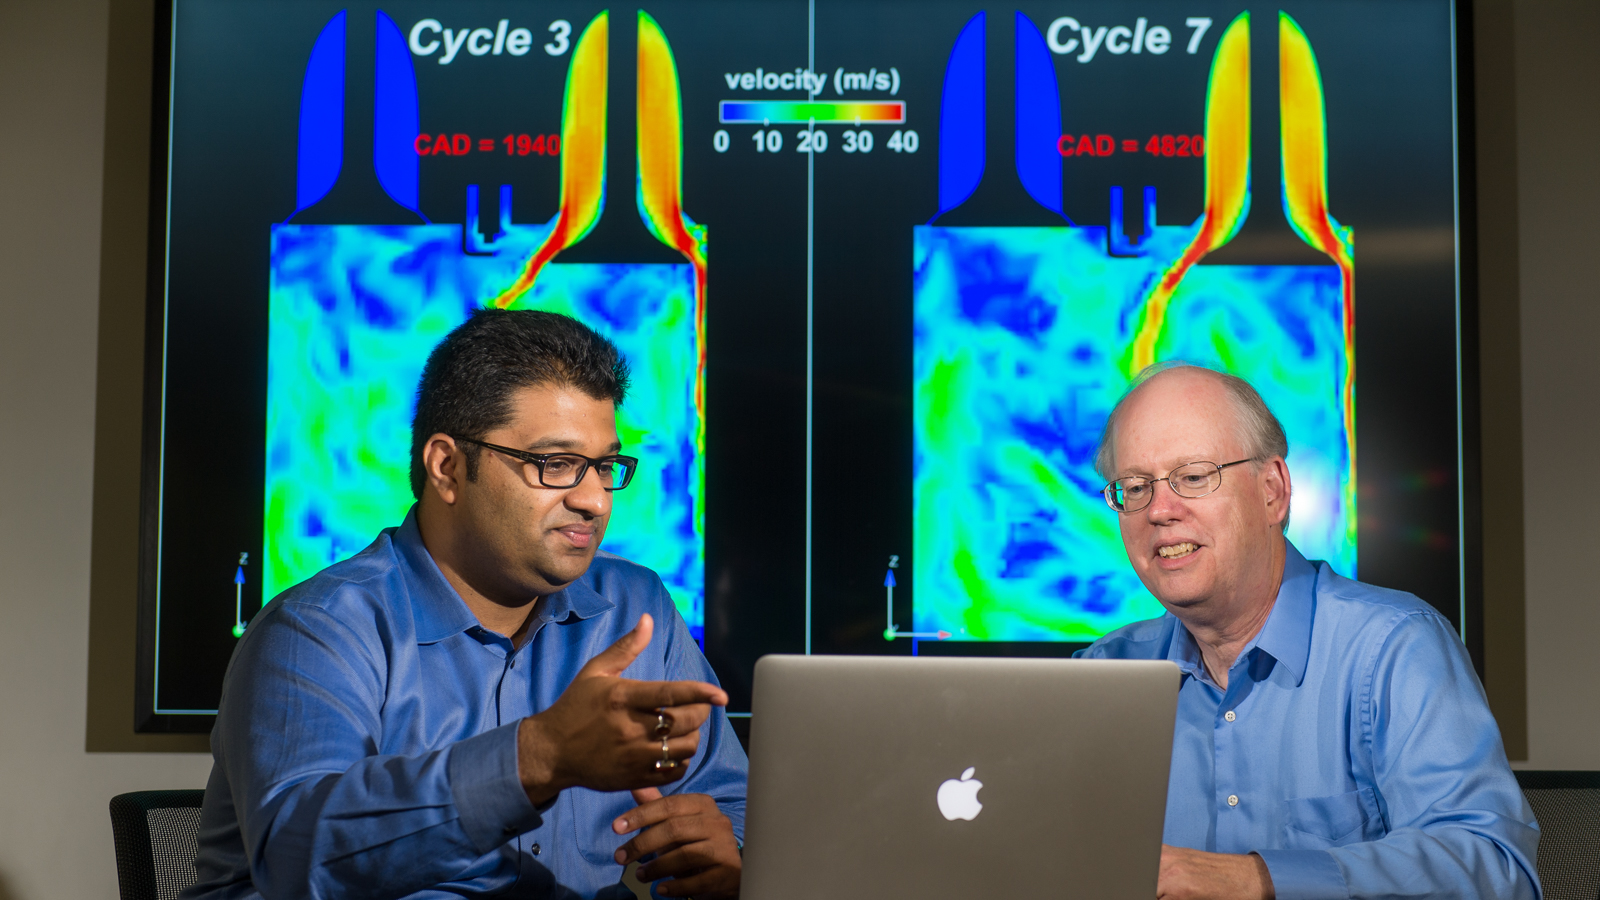 Argonne principal mechanical engineer Sibendu Som (left) and computational scientist Raymond Bair discuss combustion engine simulations conducted by the Virtual Engine Research Institute and Fuels Initiative (VERIFI). The initiative will be running massive simulations on Argonne's Mira supercomputer to gain further insight into the inner workings of combustion engines.